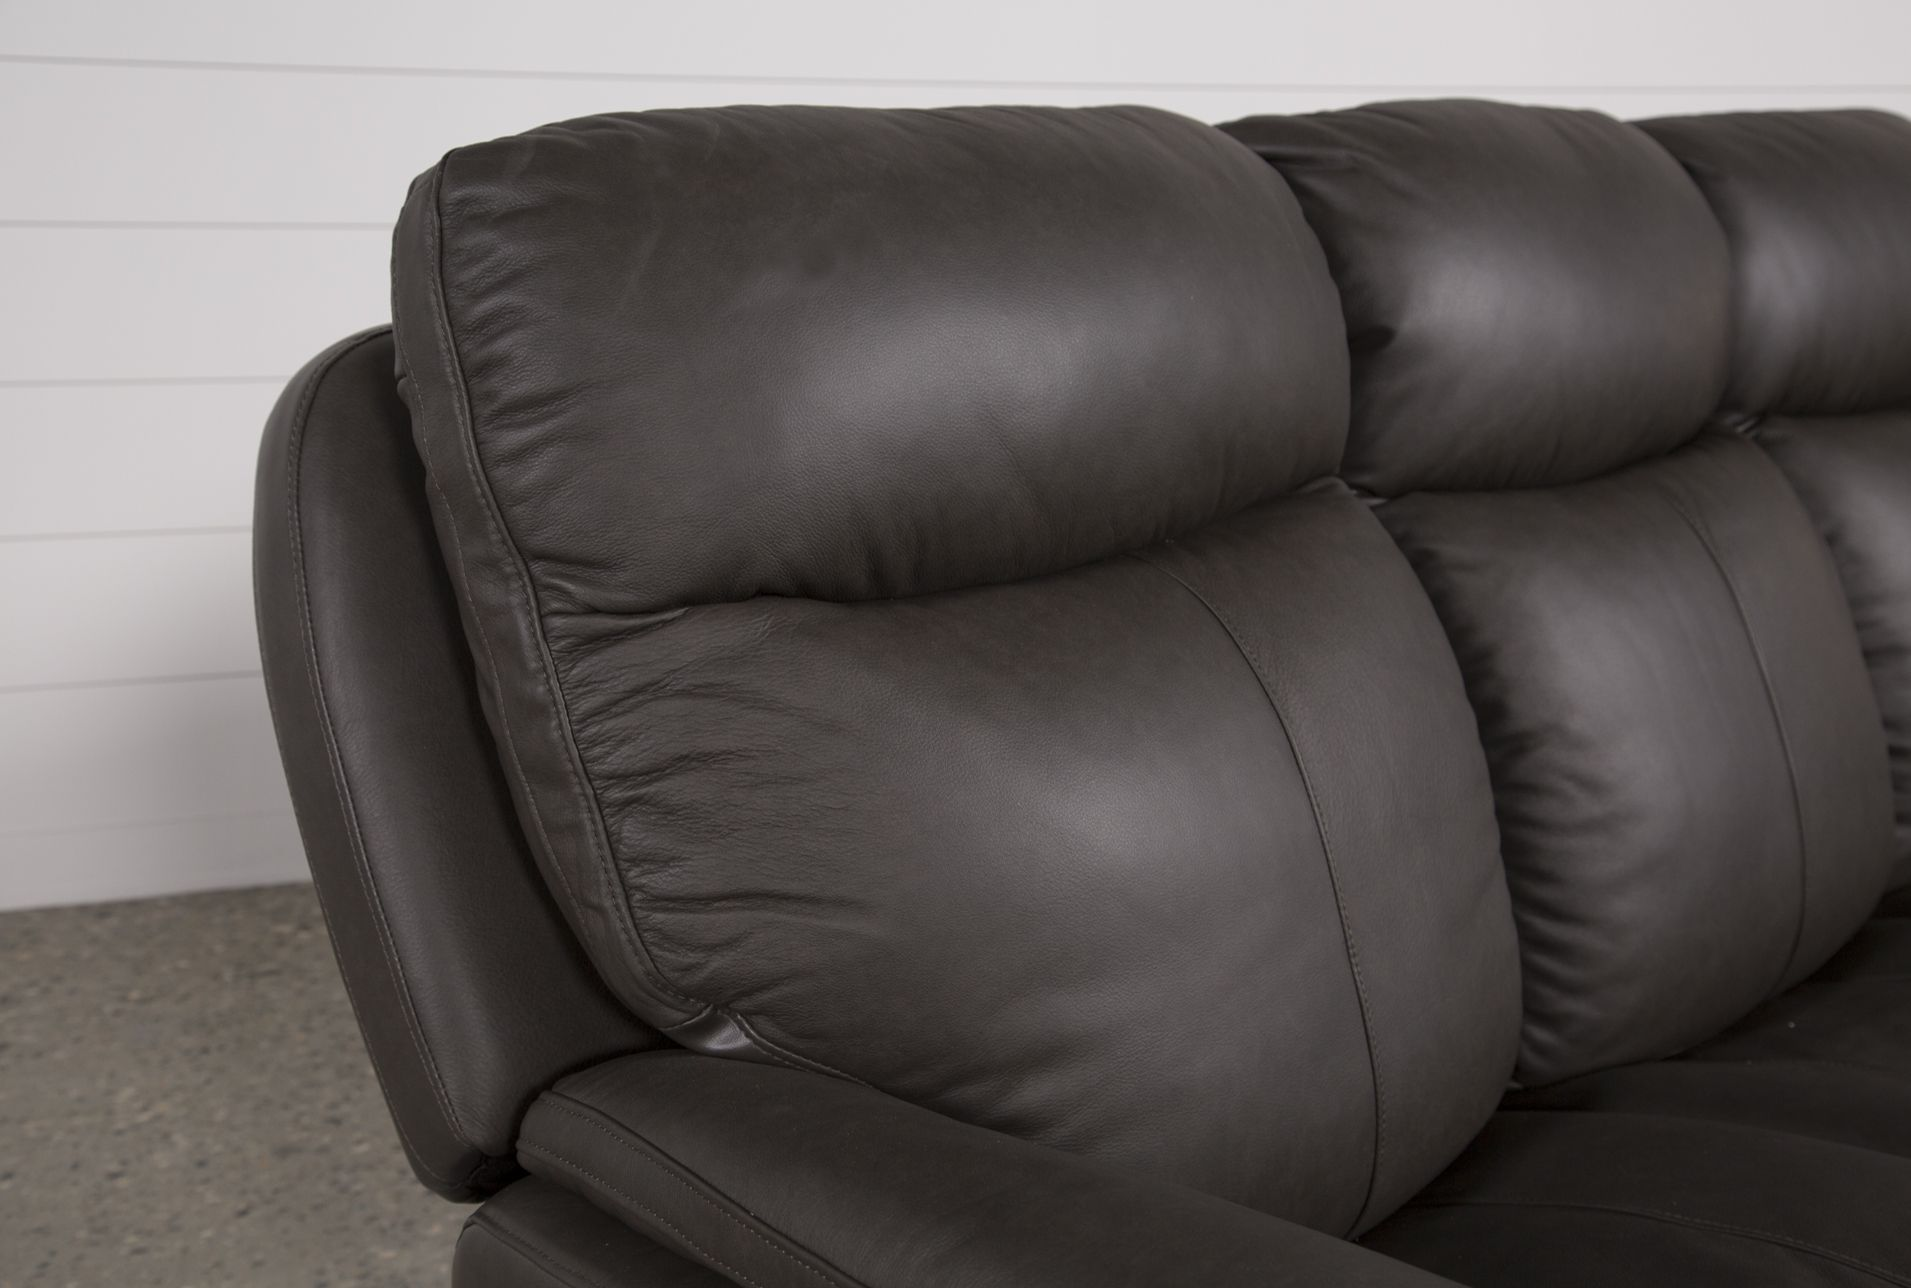 Phenomenal Bowie Leather Power Reclining Sofa W Power Headrest Caraccident5 Cool Chair Designs And Ideas Caraccident5Info